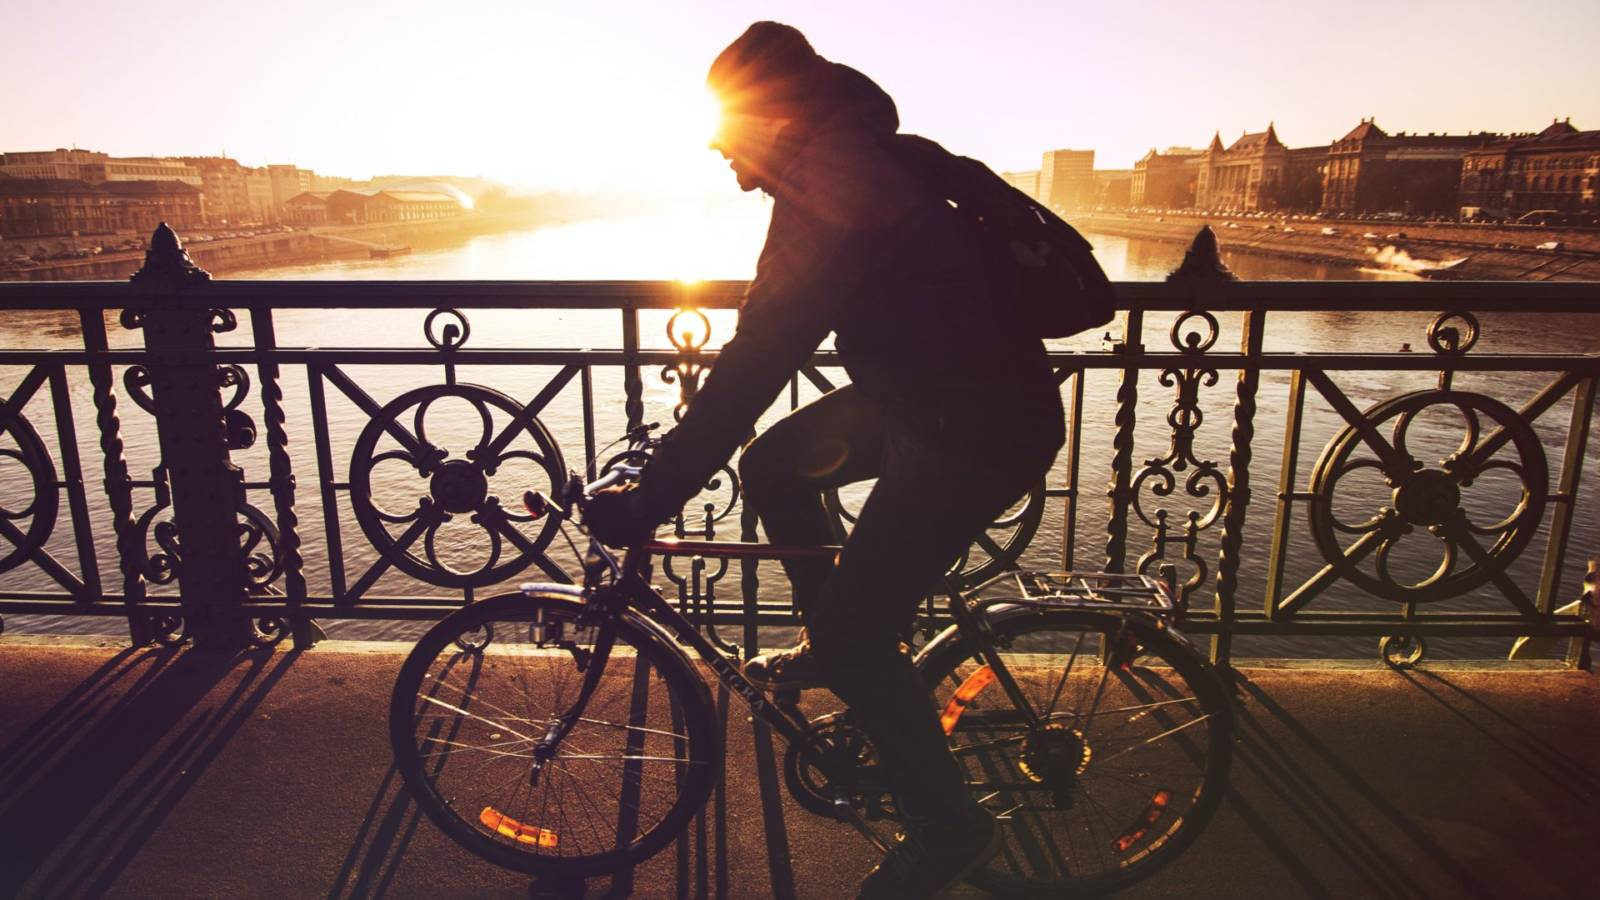 man riding bicycle in silhouette painting